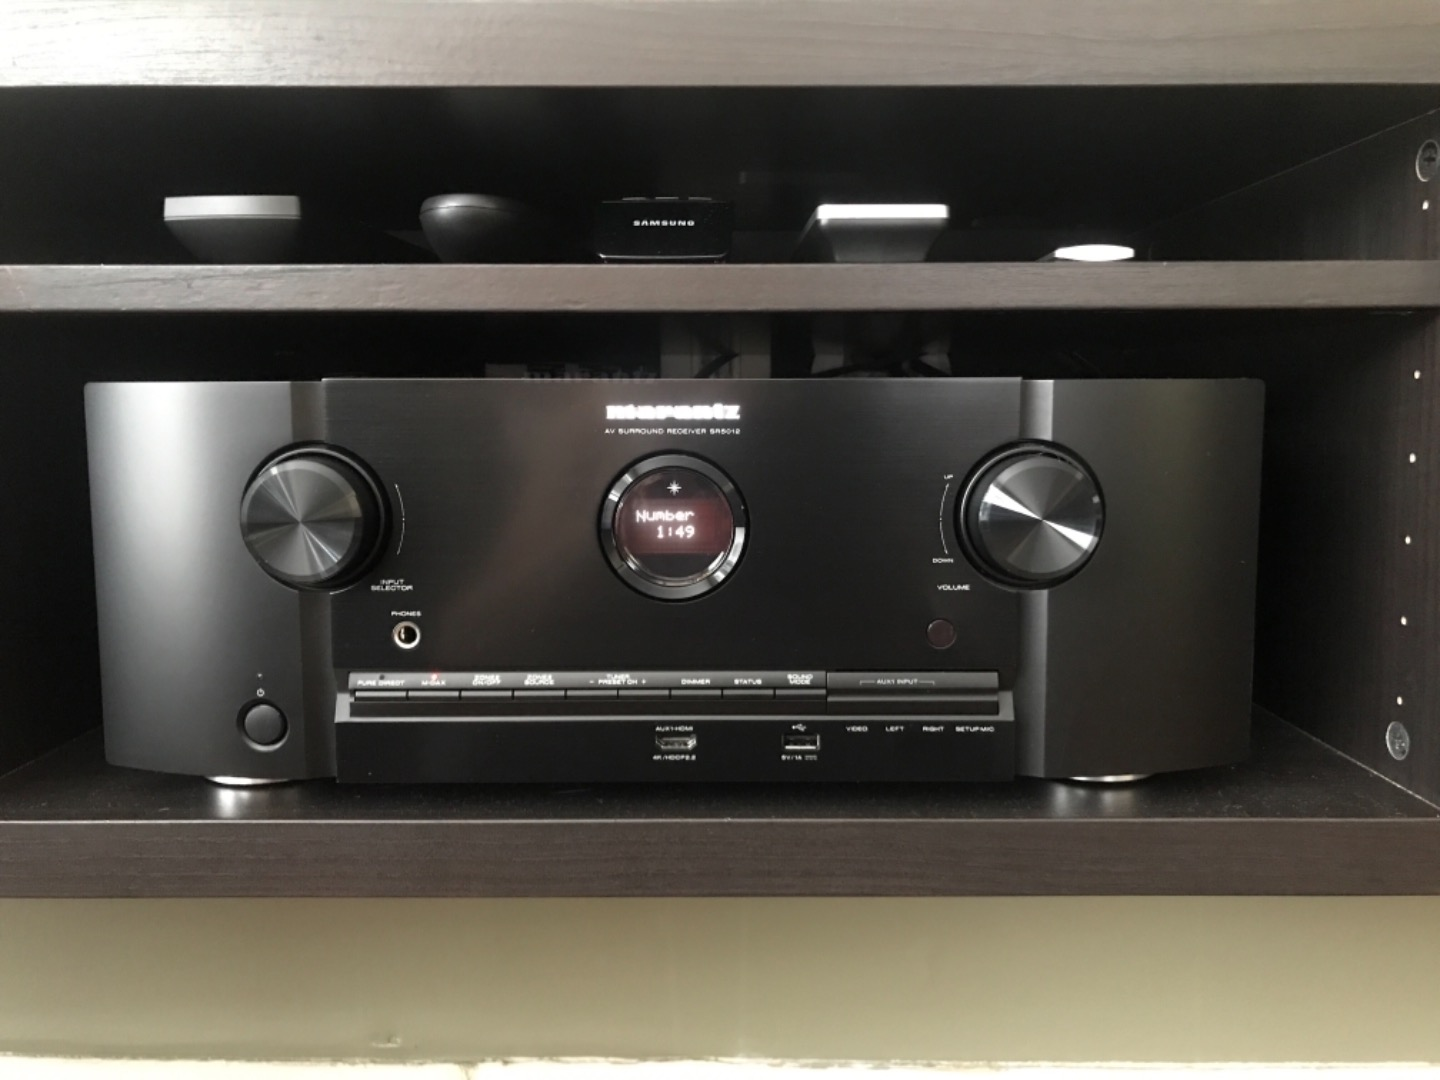 Marantz SR5012 7 2-channel home theater receiver with Wi-Fi®, Dolby